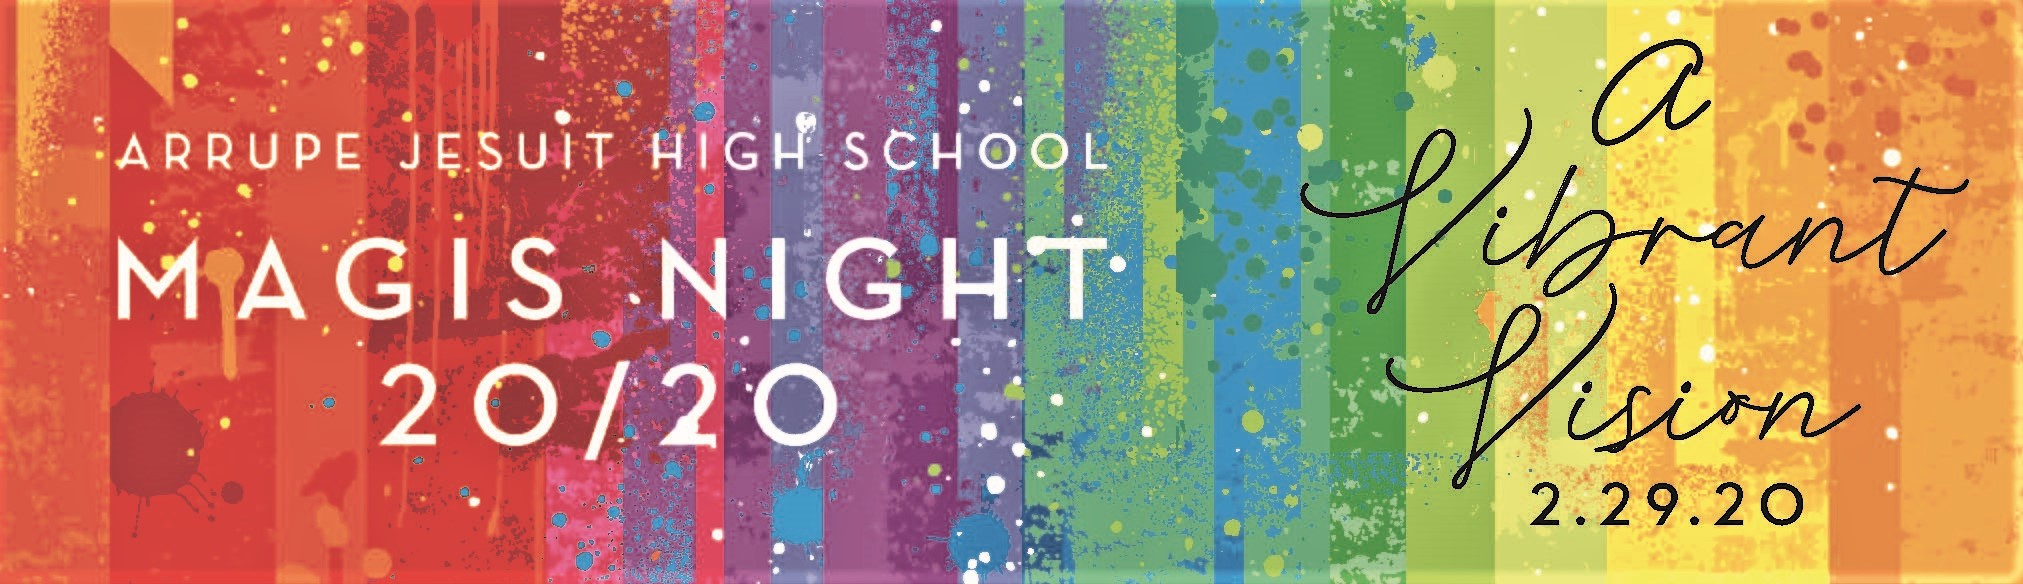 Arrupe Jesuit High School : GET INVOLVED : Events : Magis Night